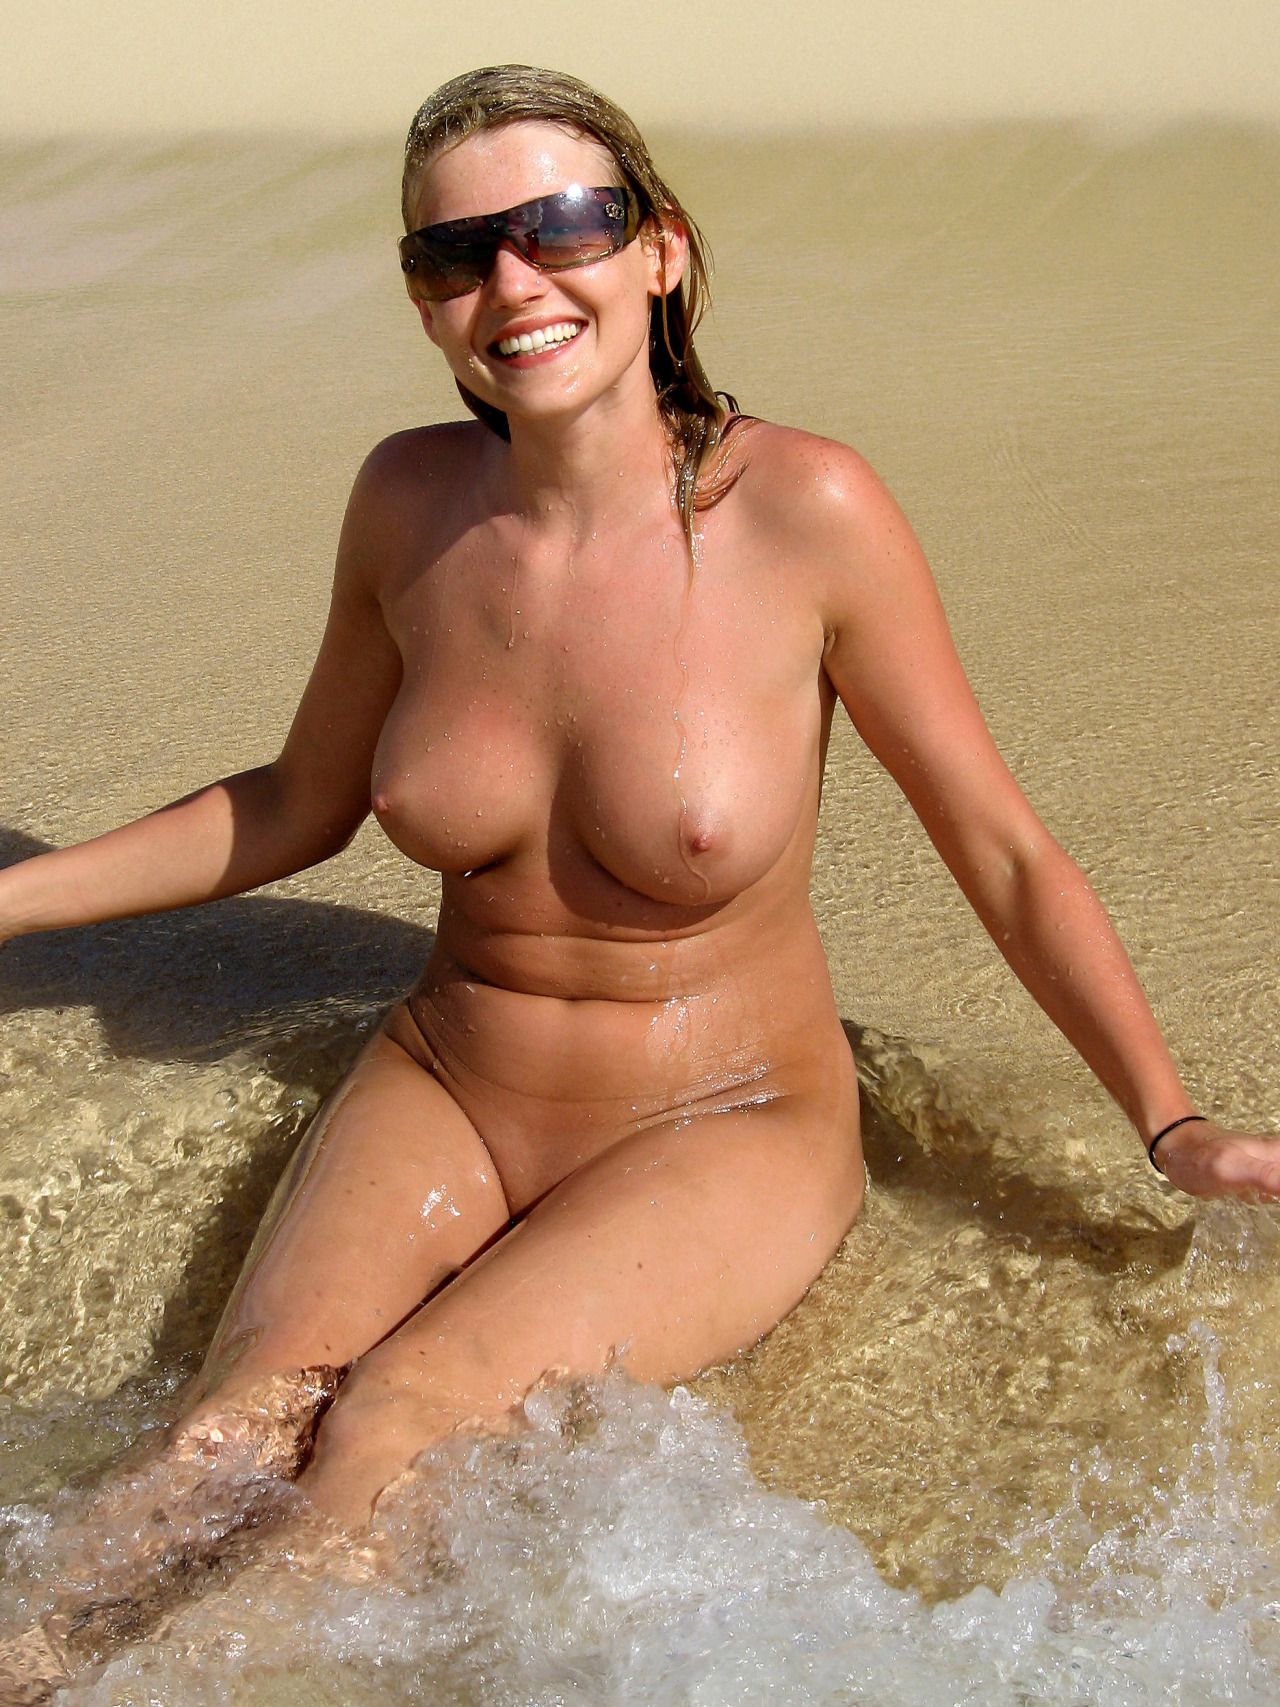 israil beach girls naked pic